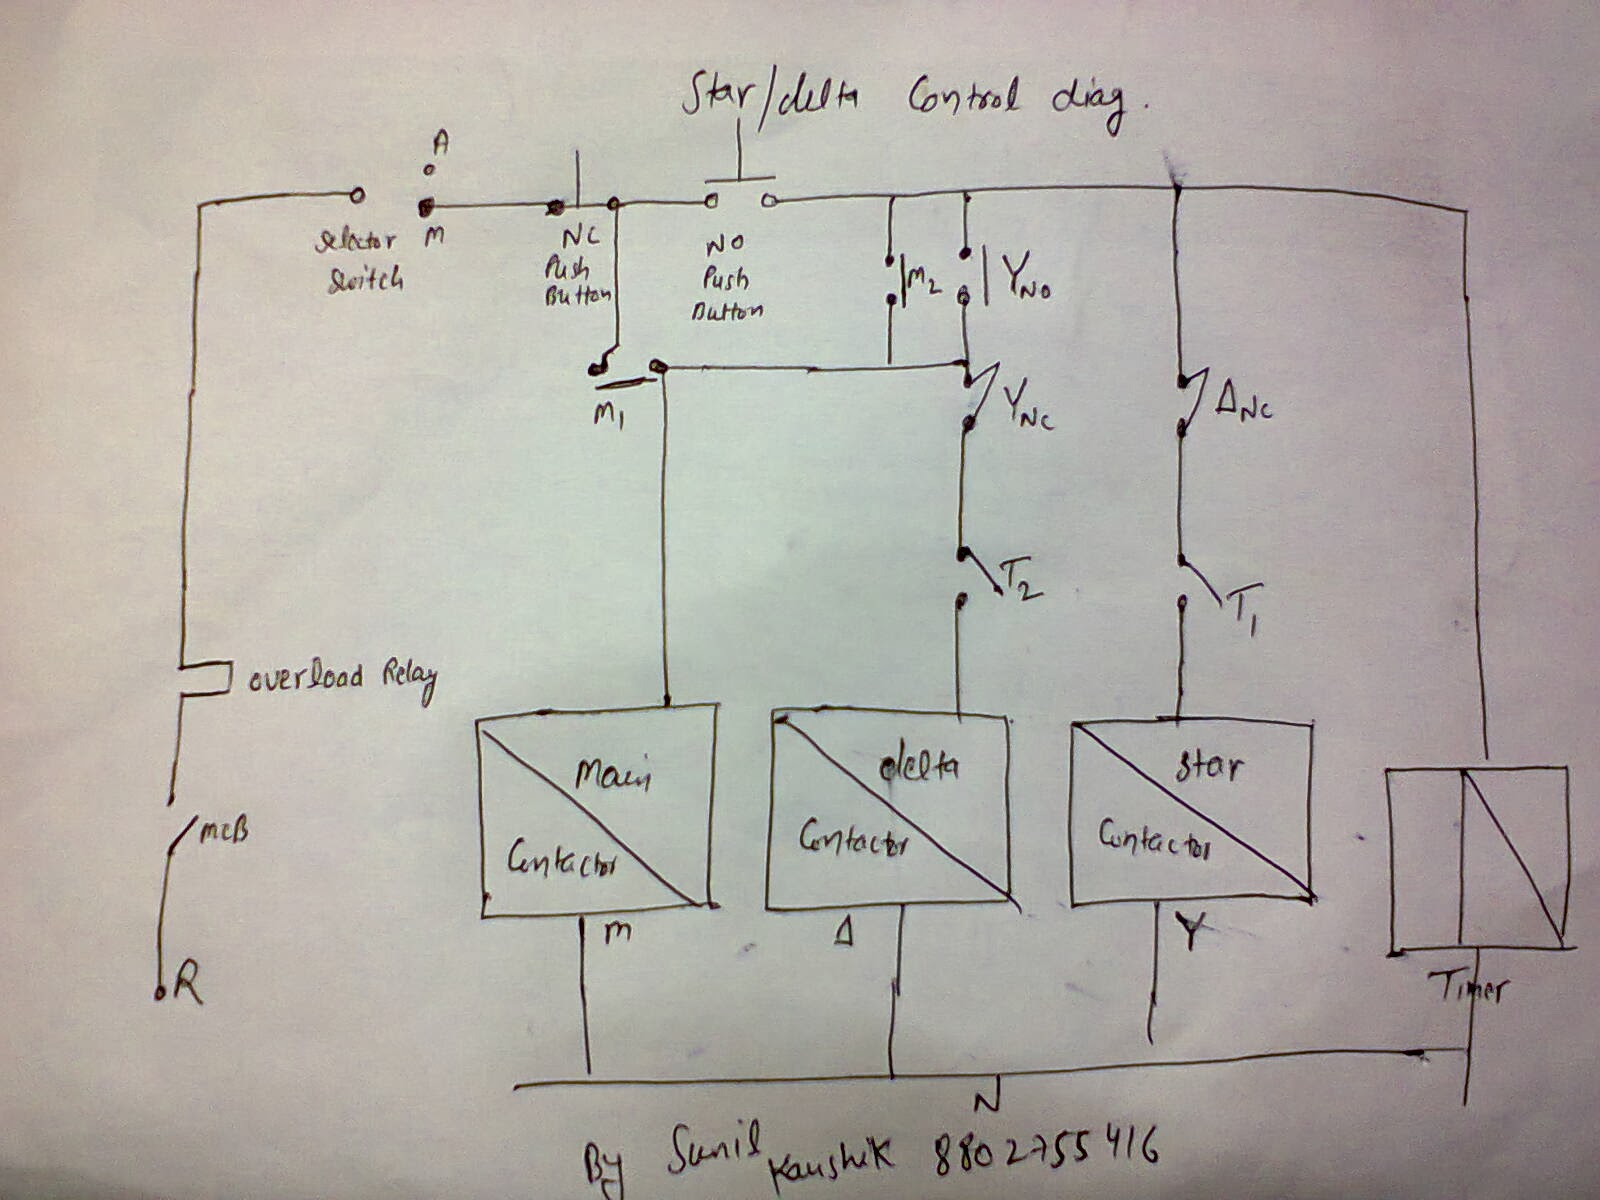 actual photo of control wiring diagram star delta starter motion sensor light switch uk electrical and elecrtonic world